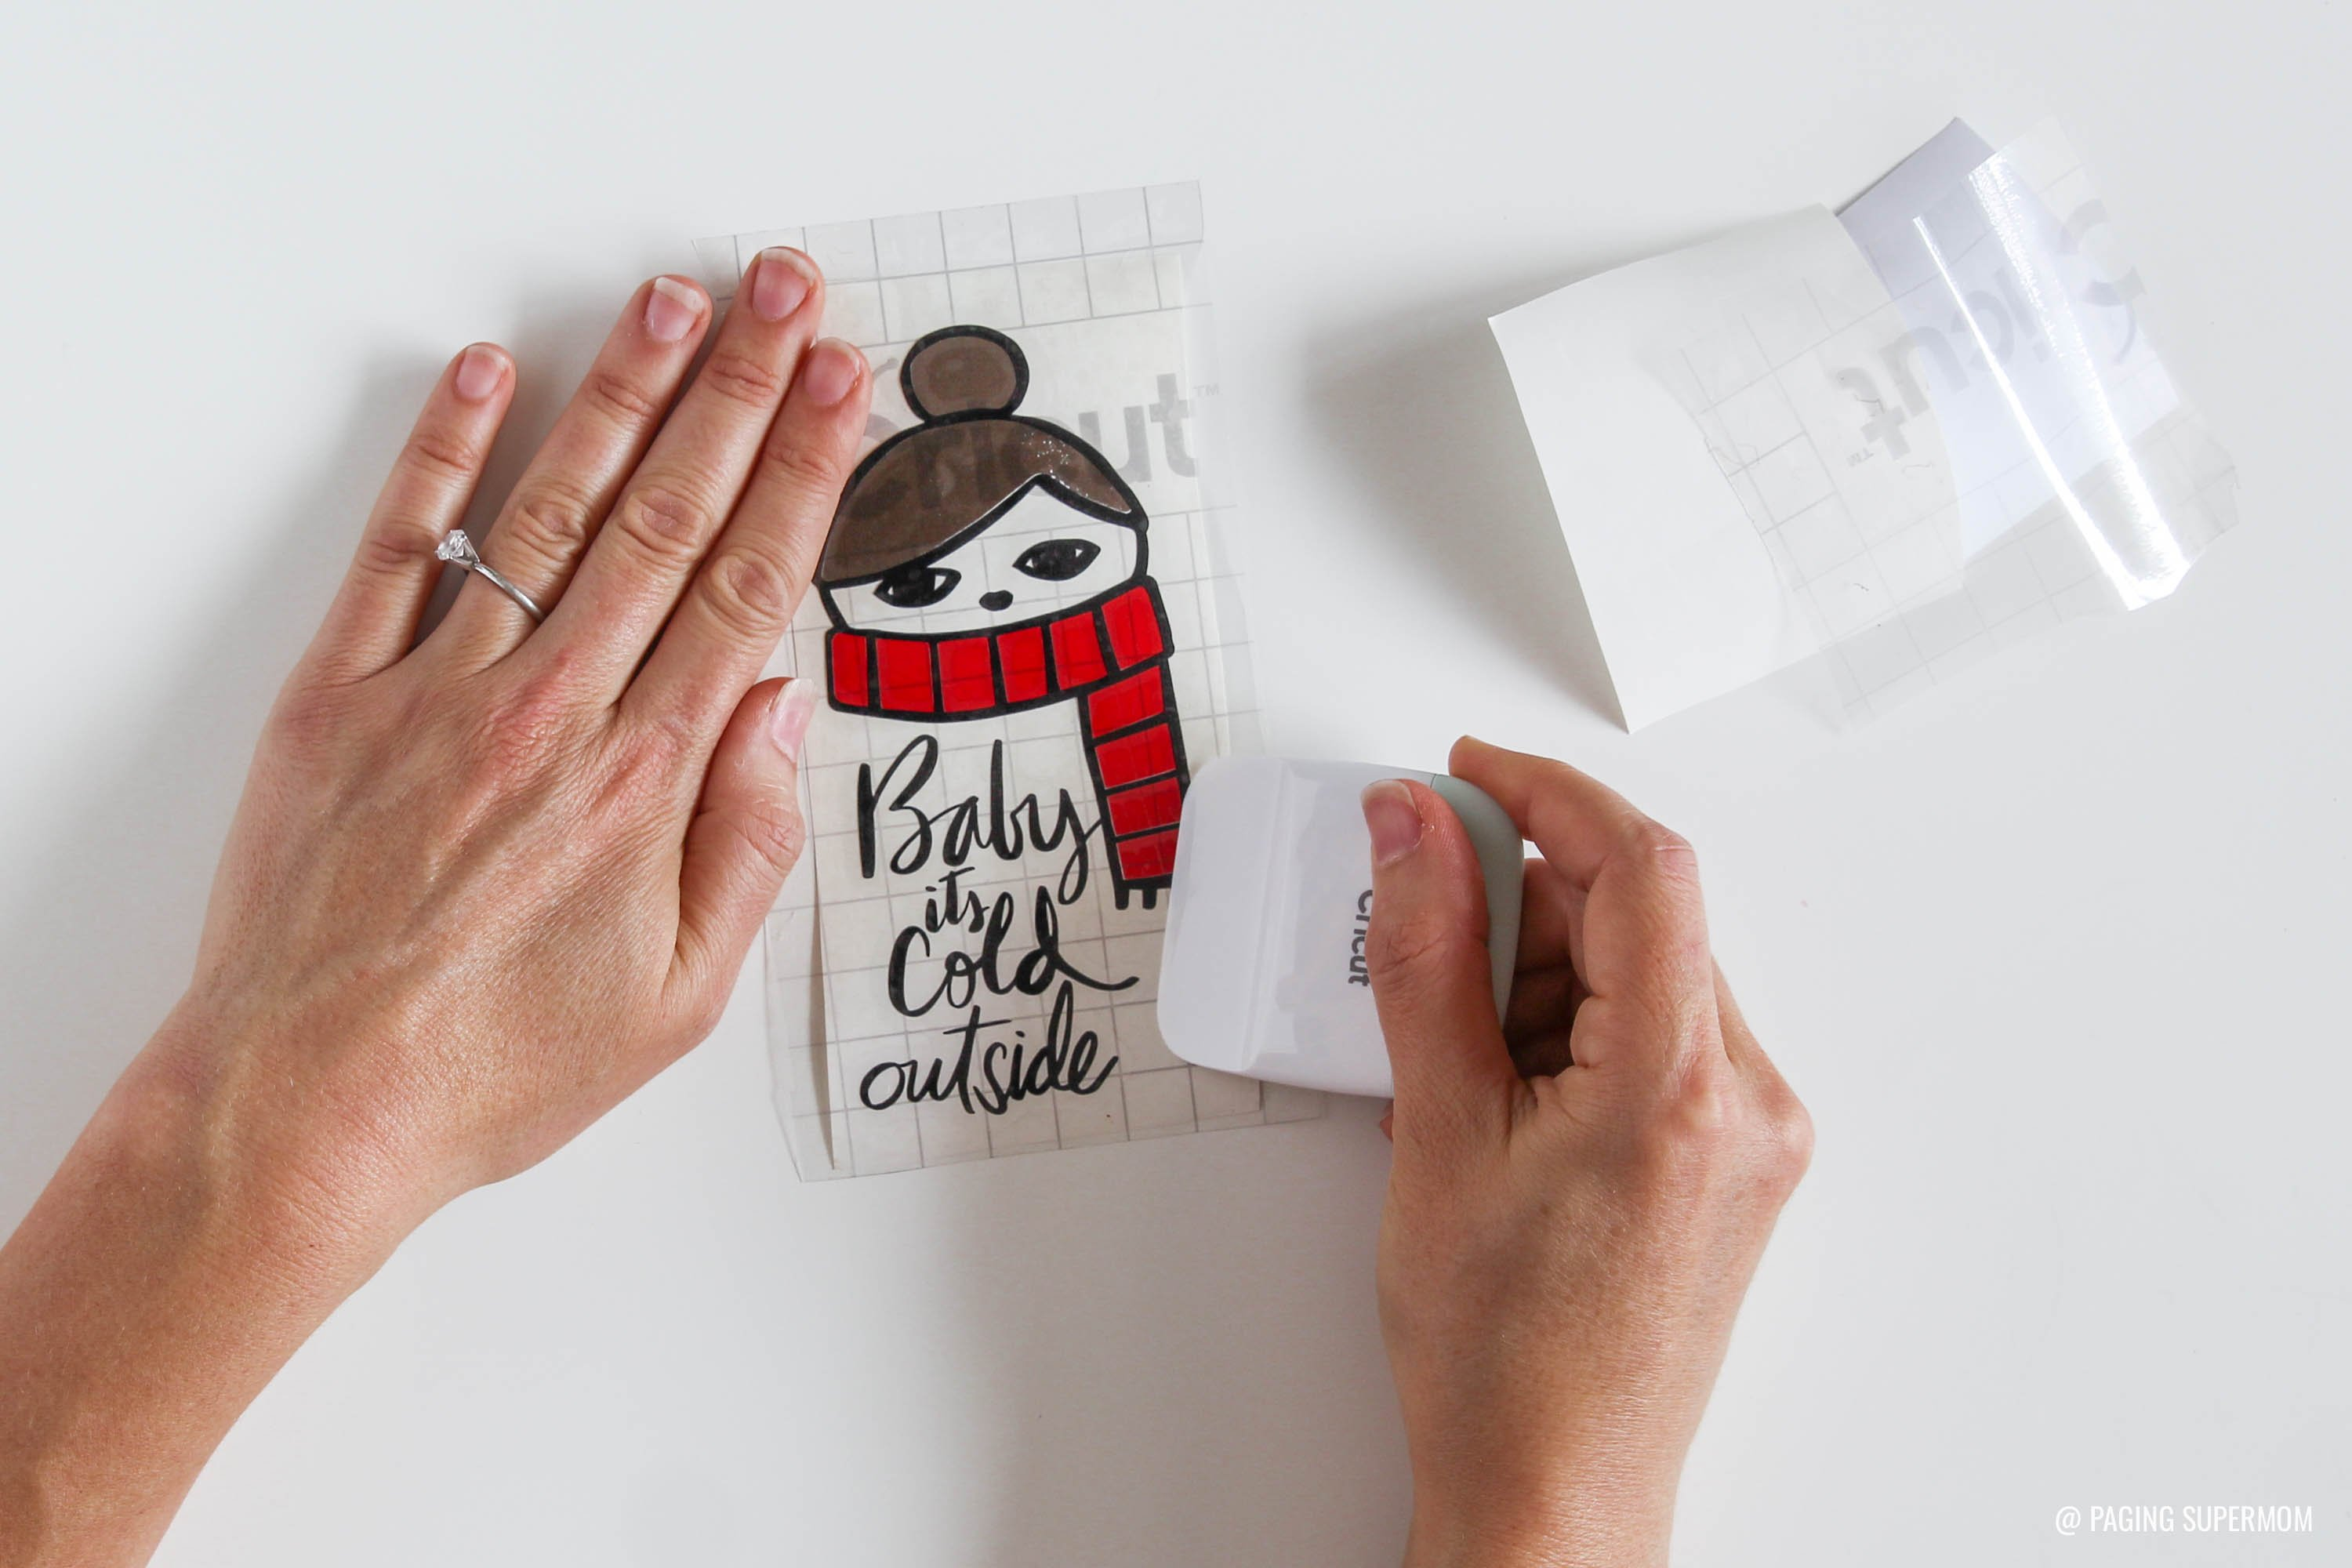 Baby Its Cold Outside Layered Vinyl Decal - Vinyl Layering Cricut Design Space Tutorial via @PagingSupermom